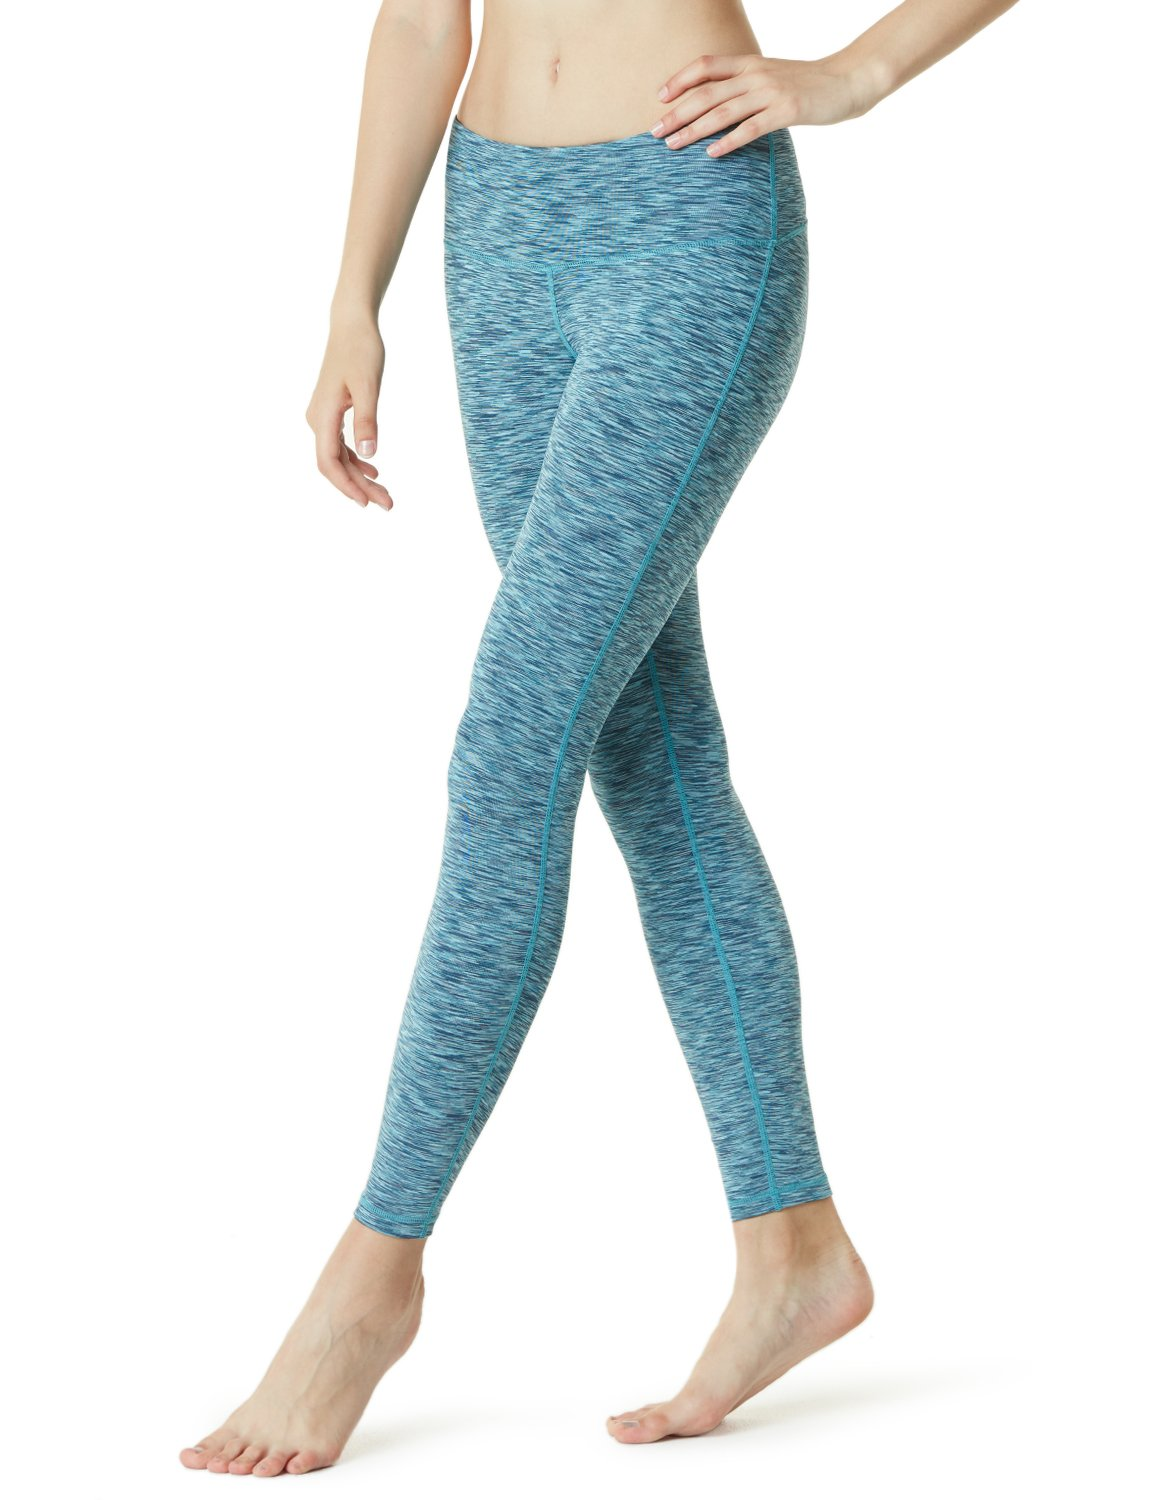 TSLA Women High Waist Yoga Pants with Pockets, Tummy Control Yoga Capris, 4 Way Stretch Capri Leggings with Pockets